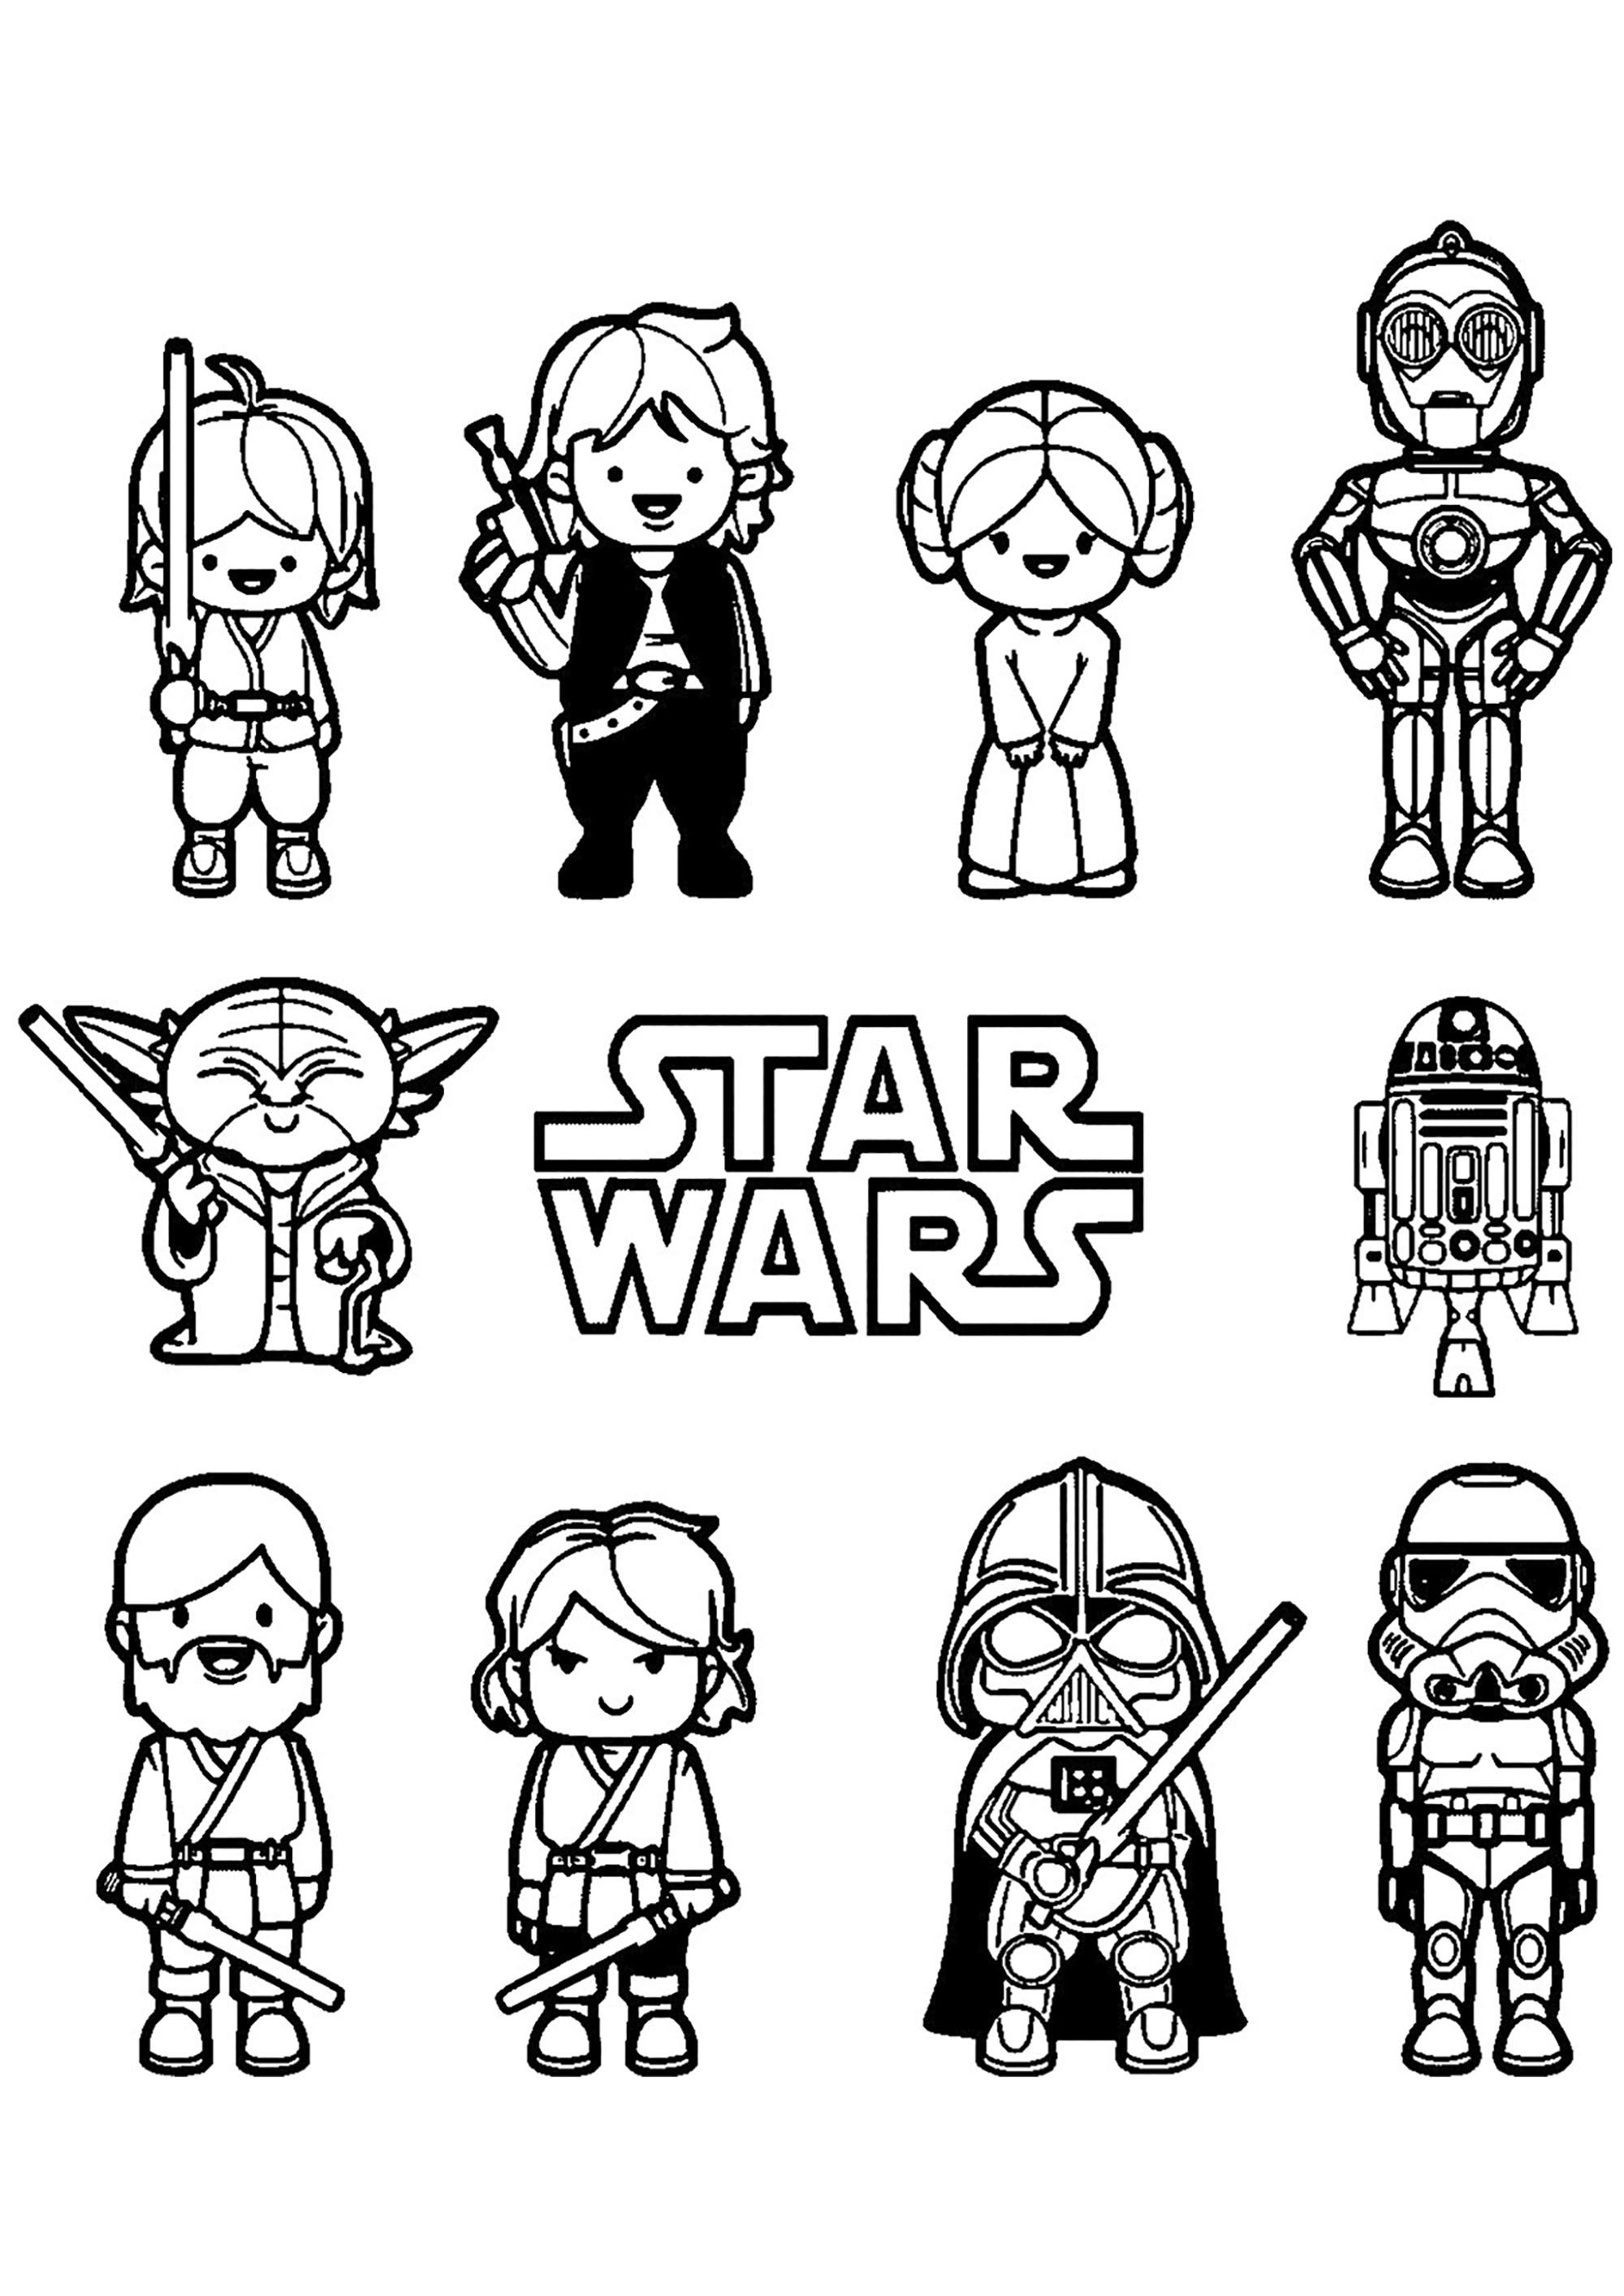 Best Picture Star Wars Coloring Pages Star Wars Coloring Book Star Wars Colors Star Wars Coloring Sheet